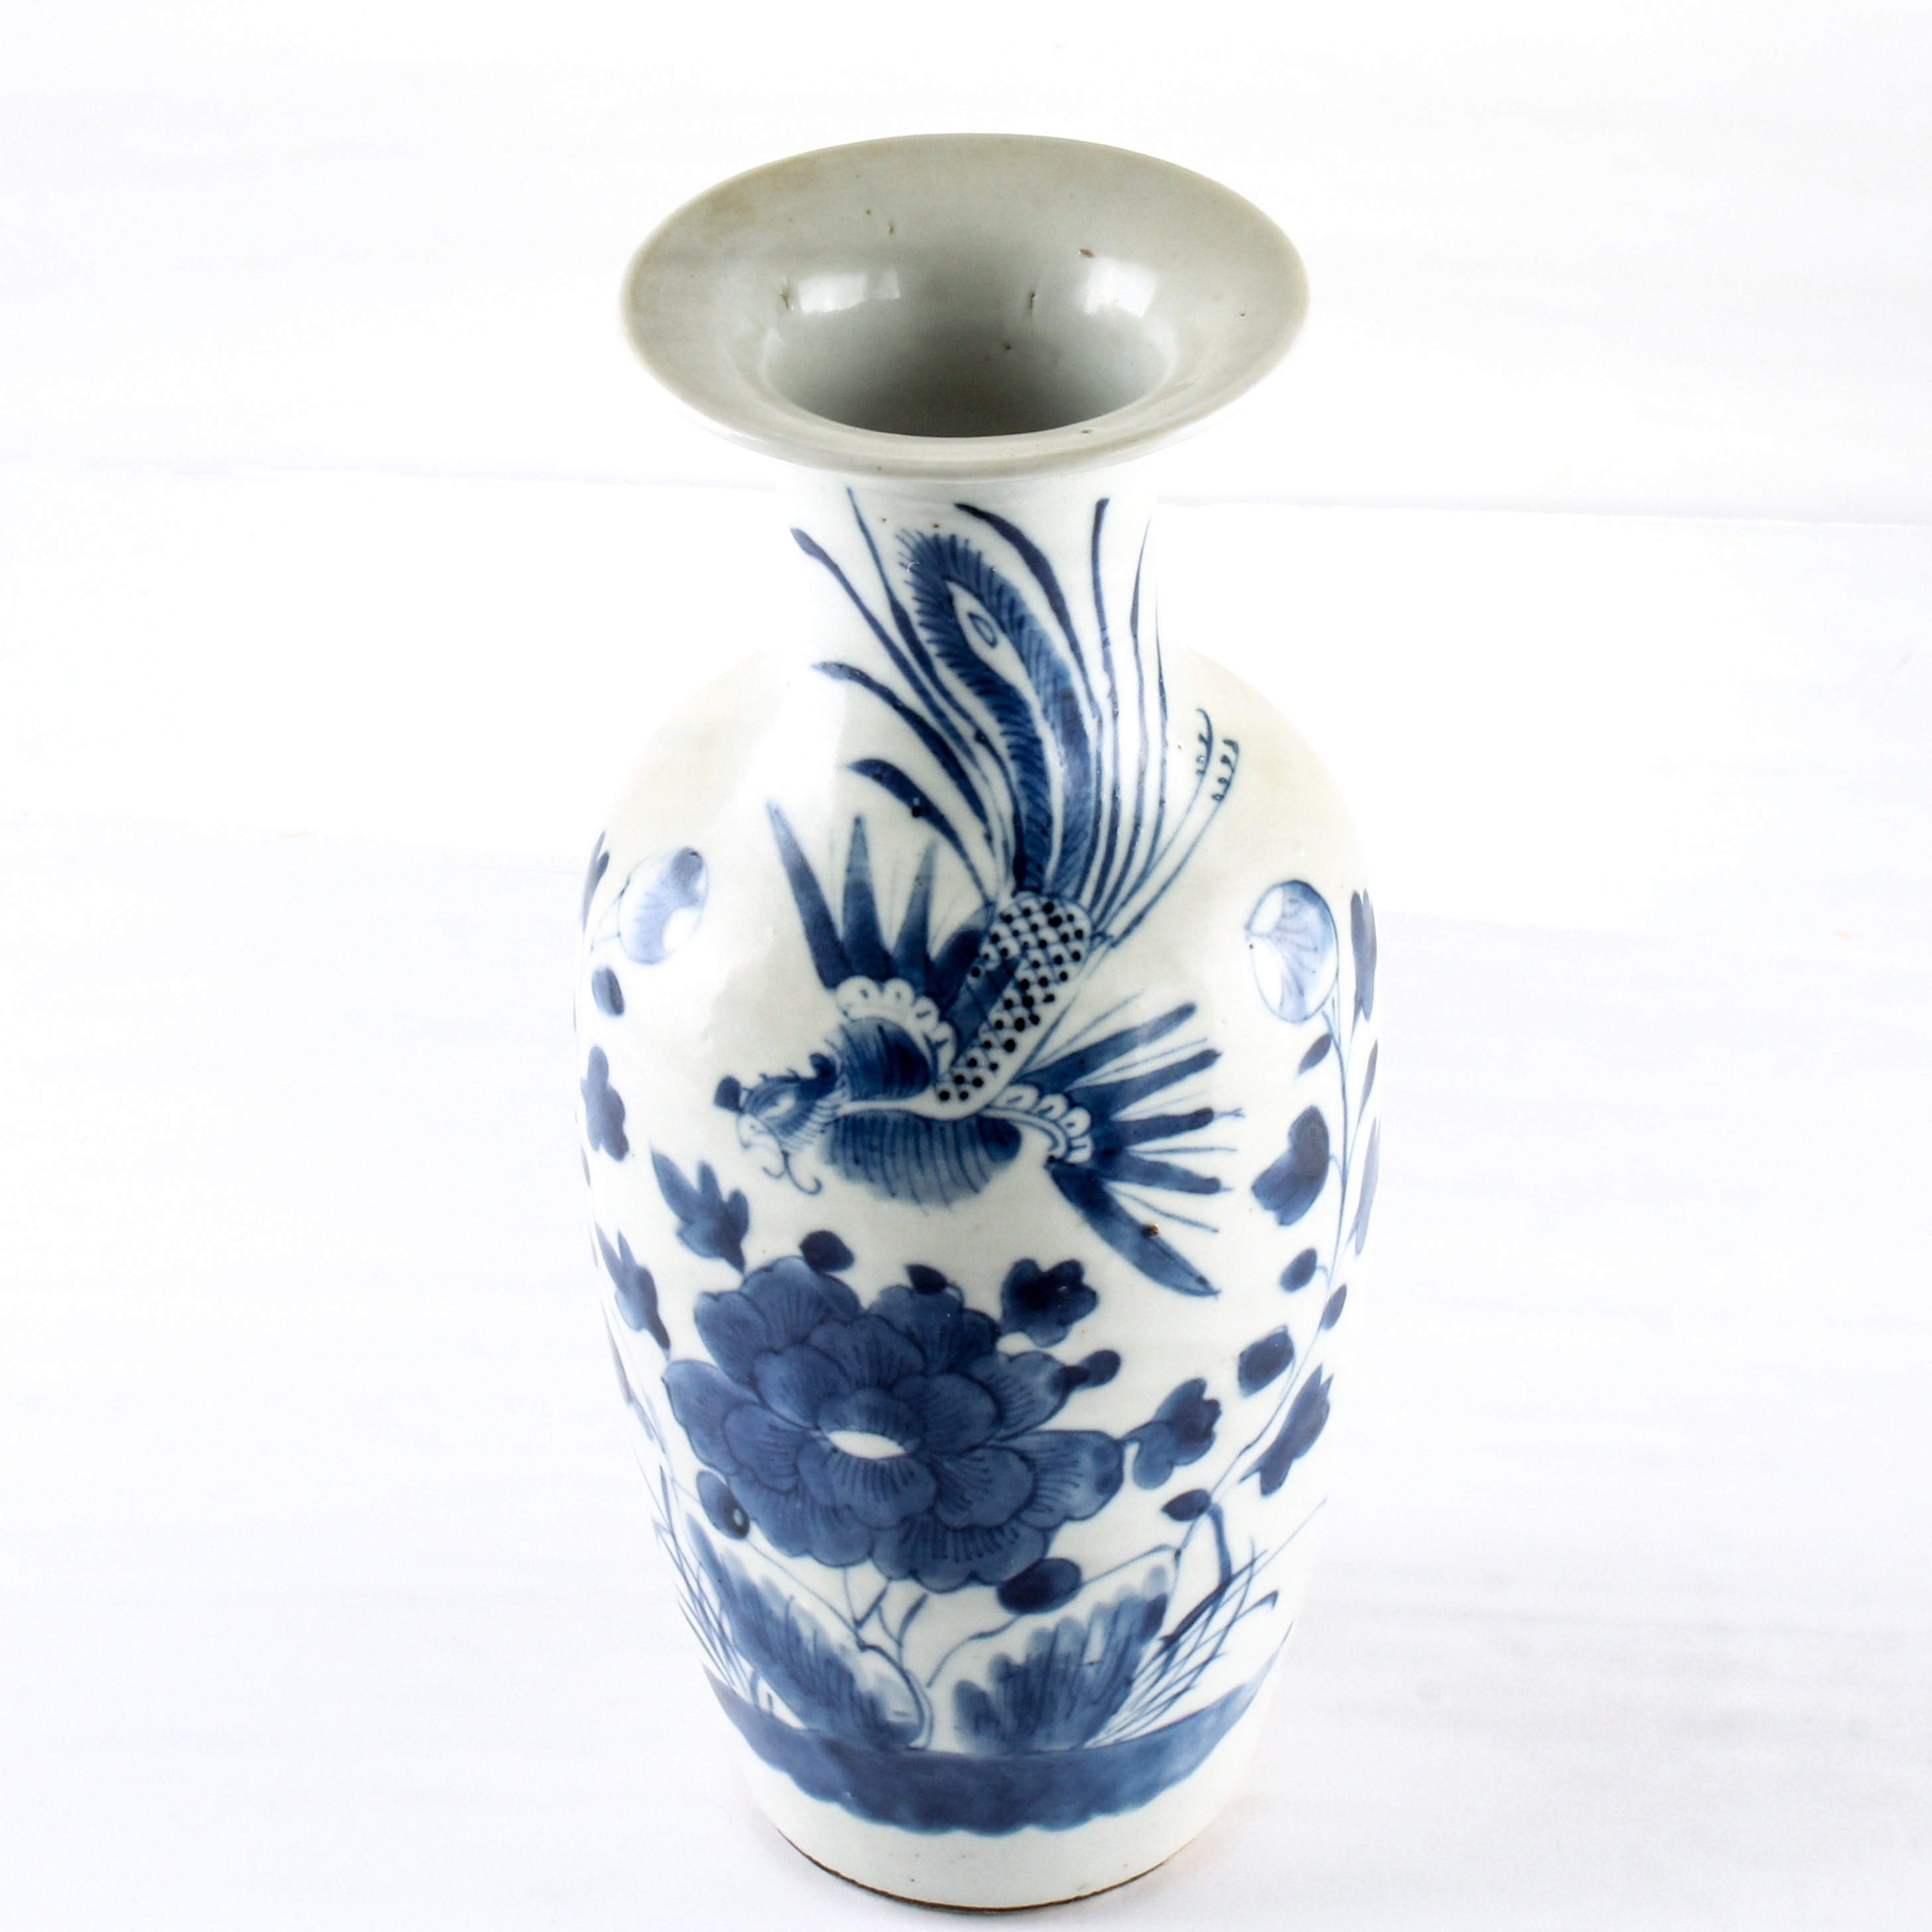 Antique Chinese Hand Thrown Blue and White Vase